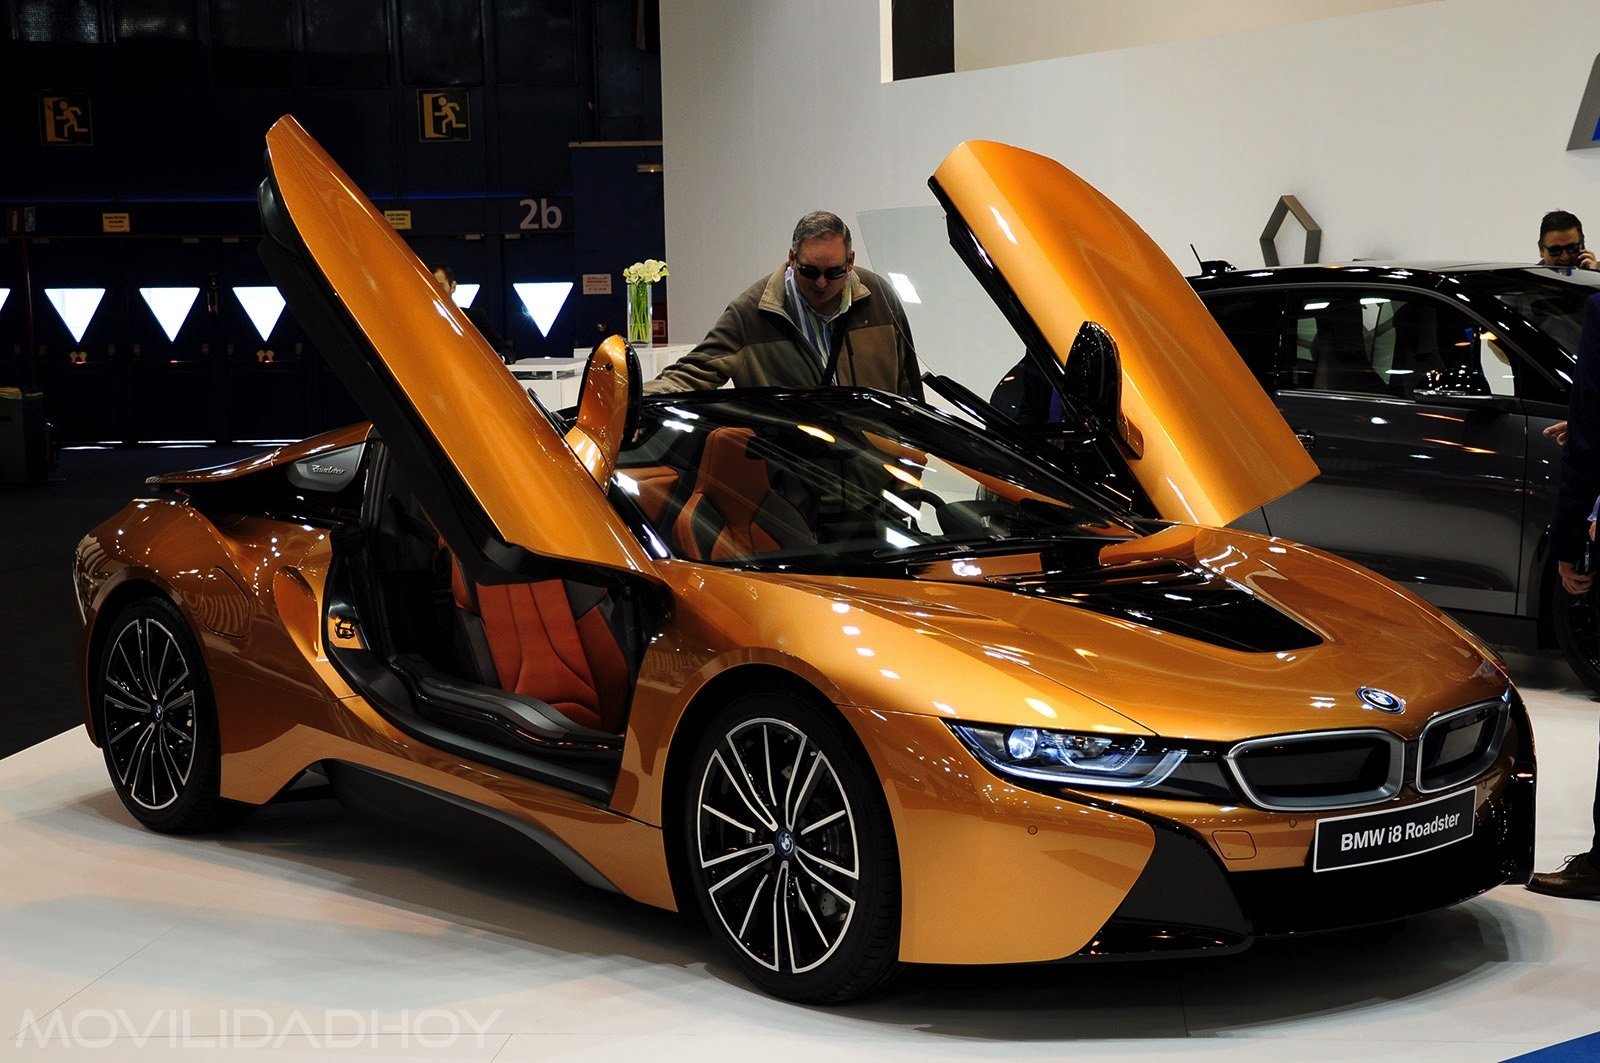 BMW i8 Roadster, híbrido enchufable